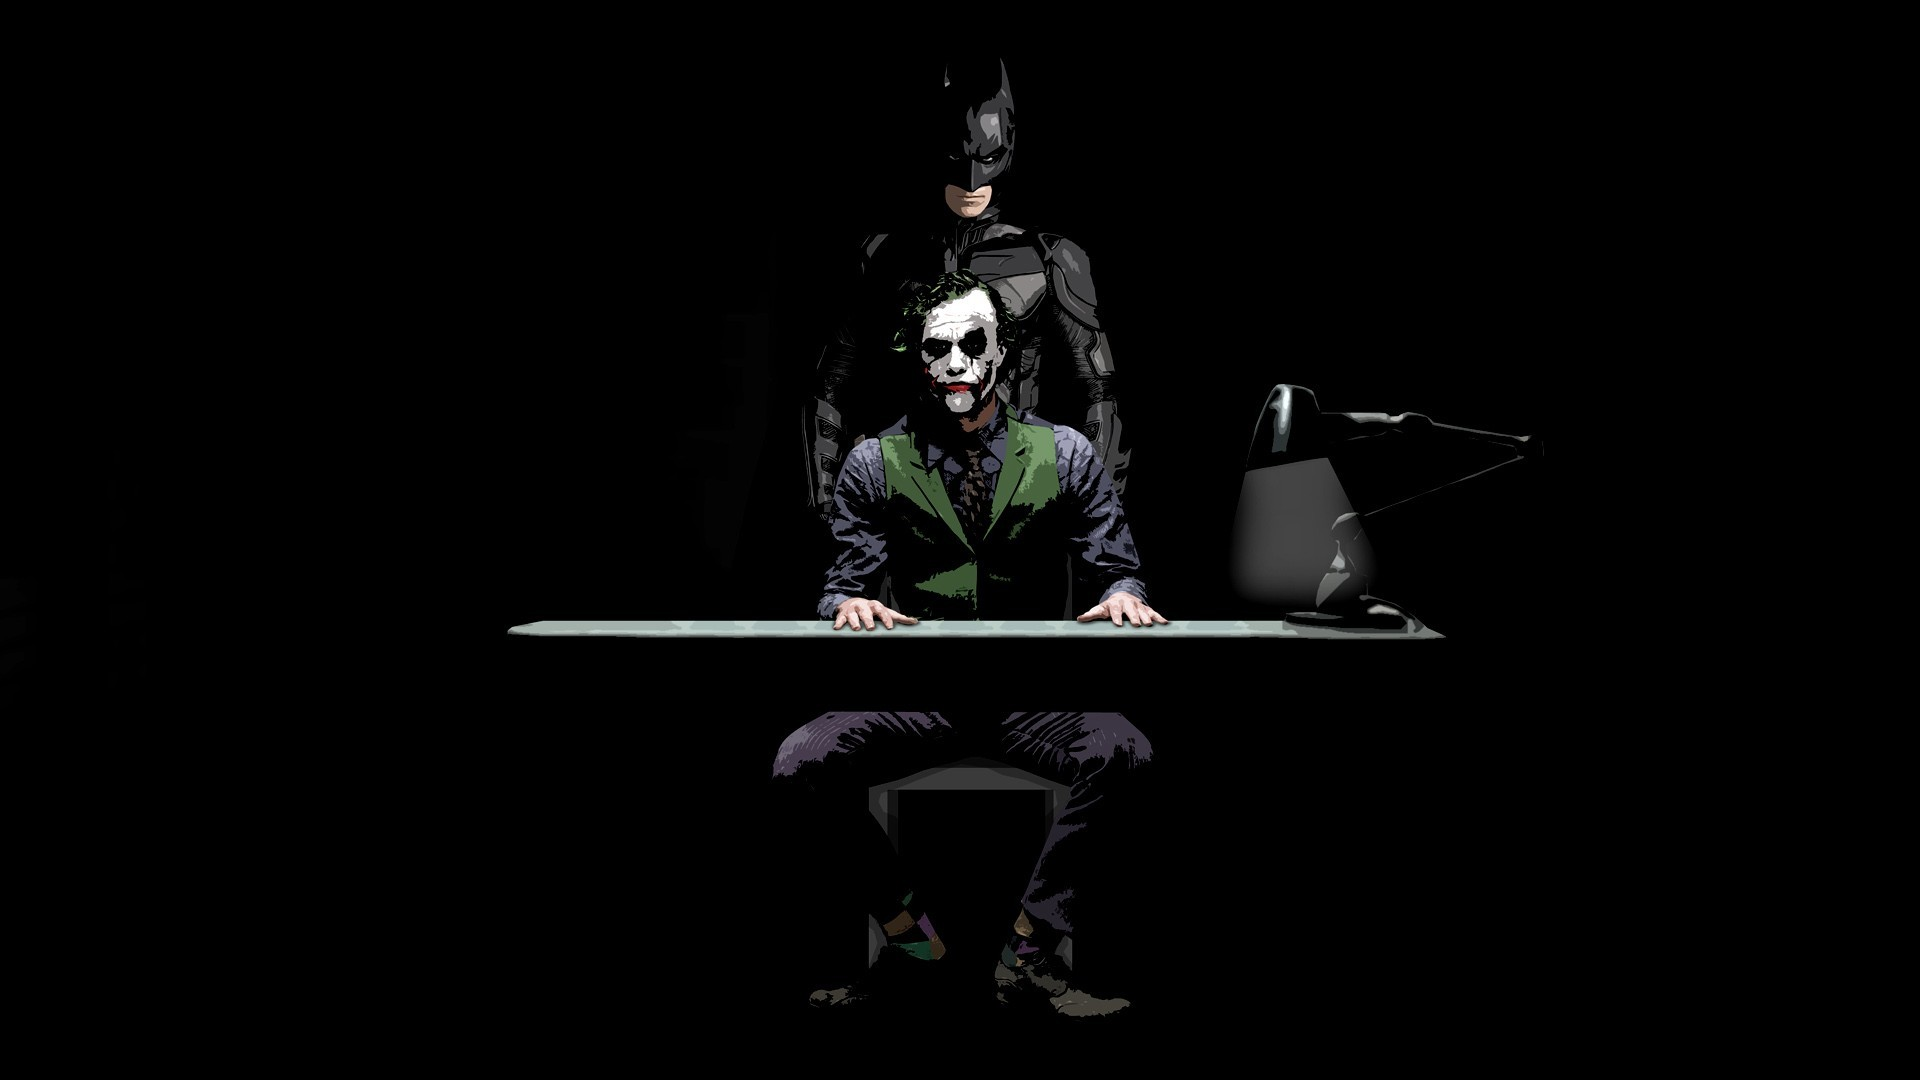 Batman and Joker   The Dark Knight wallpaper 5884 1920x1080